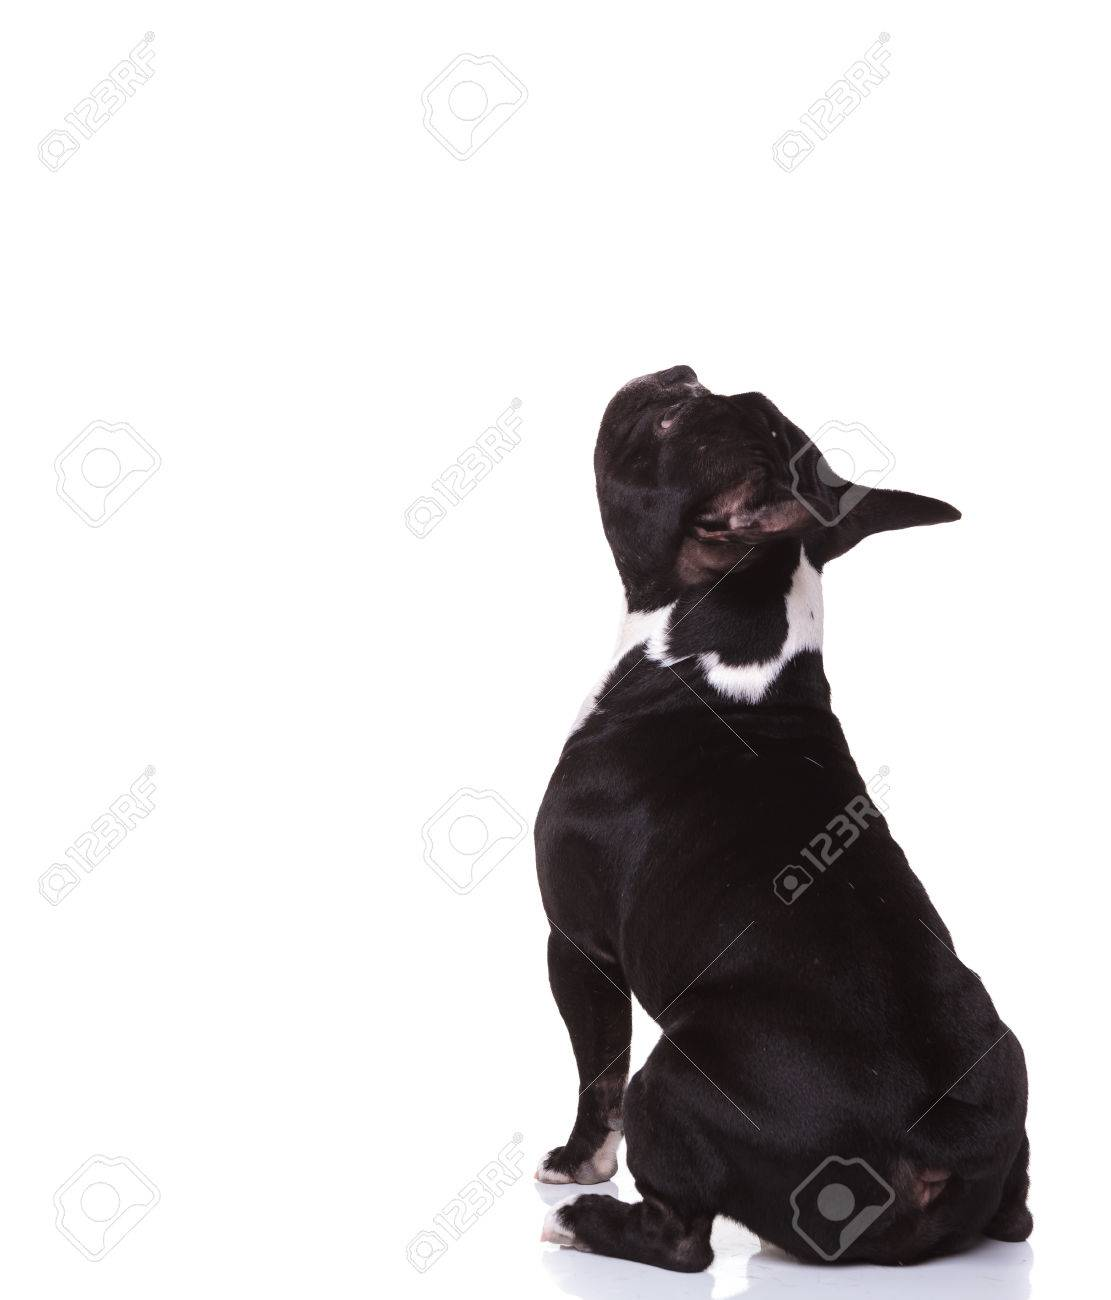 back view of a seated little french bulldog puppy looking up to something isolated on white background - 47016720